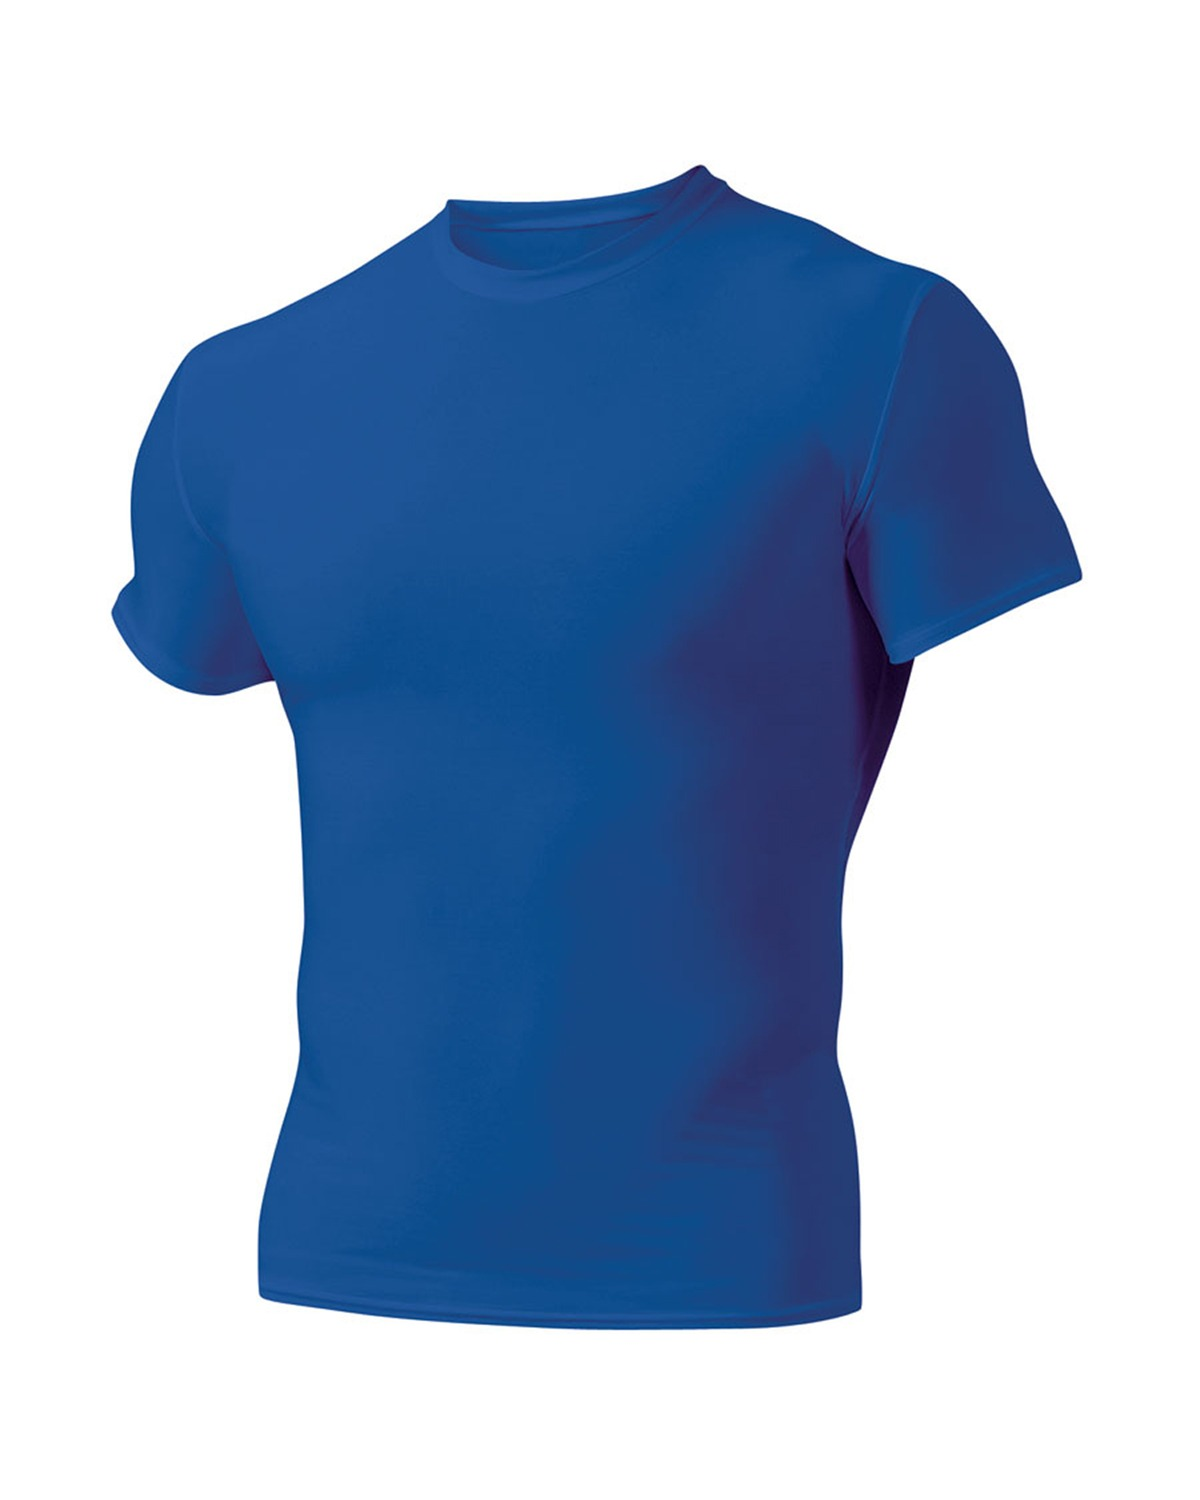 A4 N3130 - Short Sleeve Compression Crew